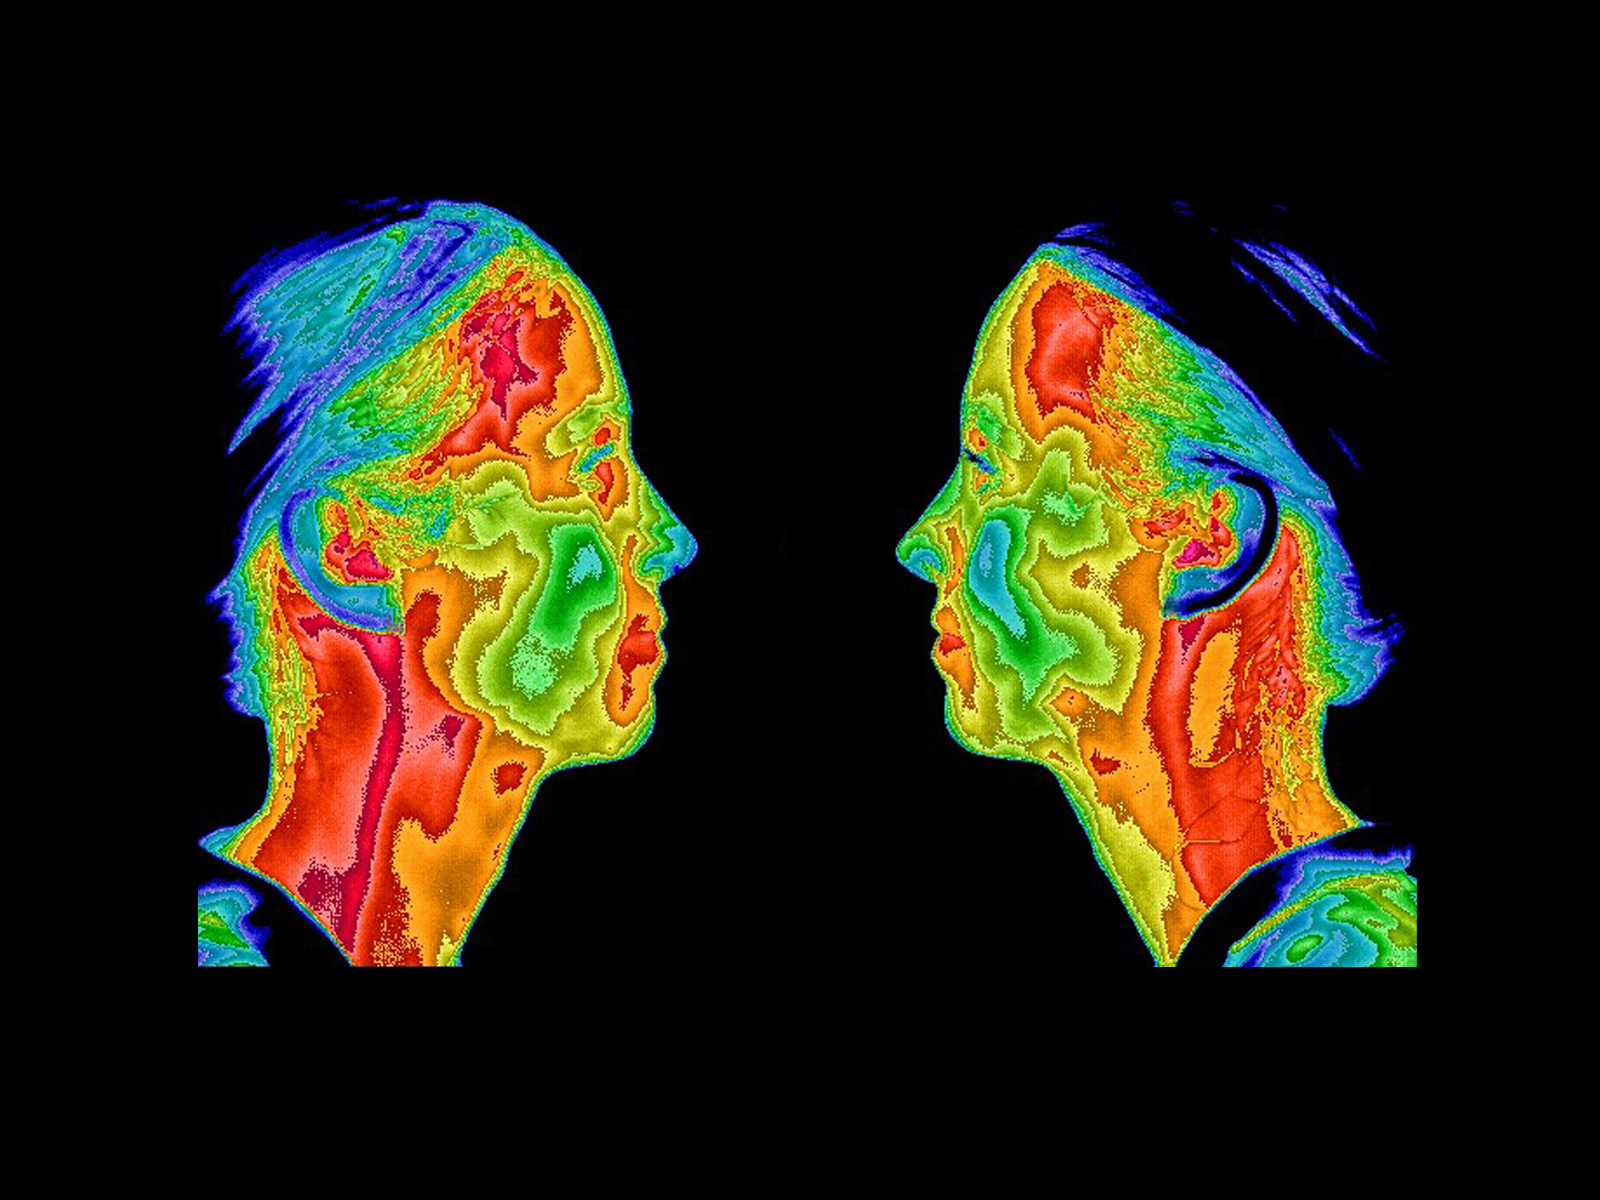 Thermogram of faces